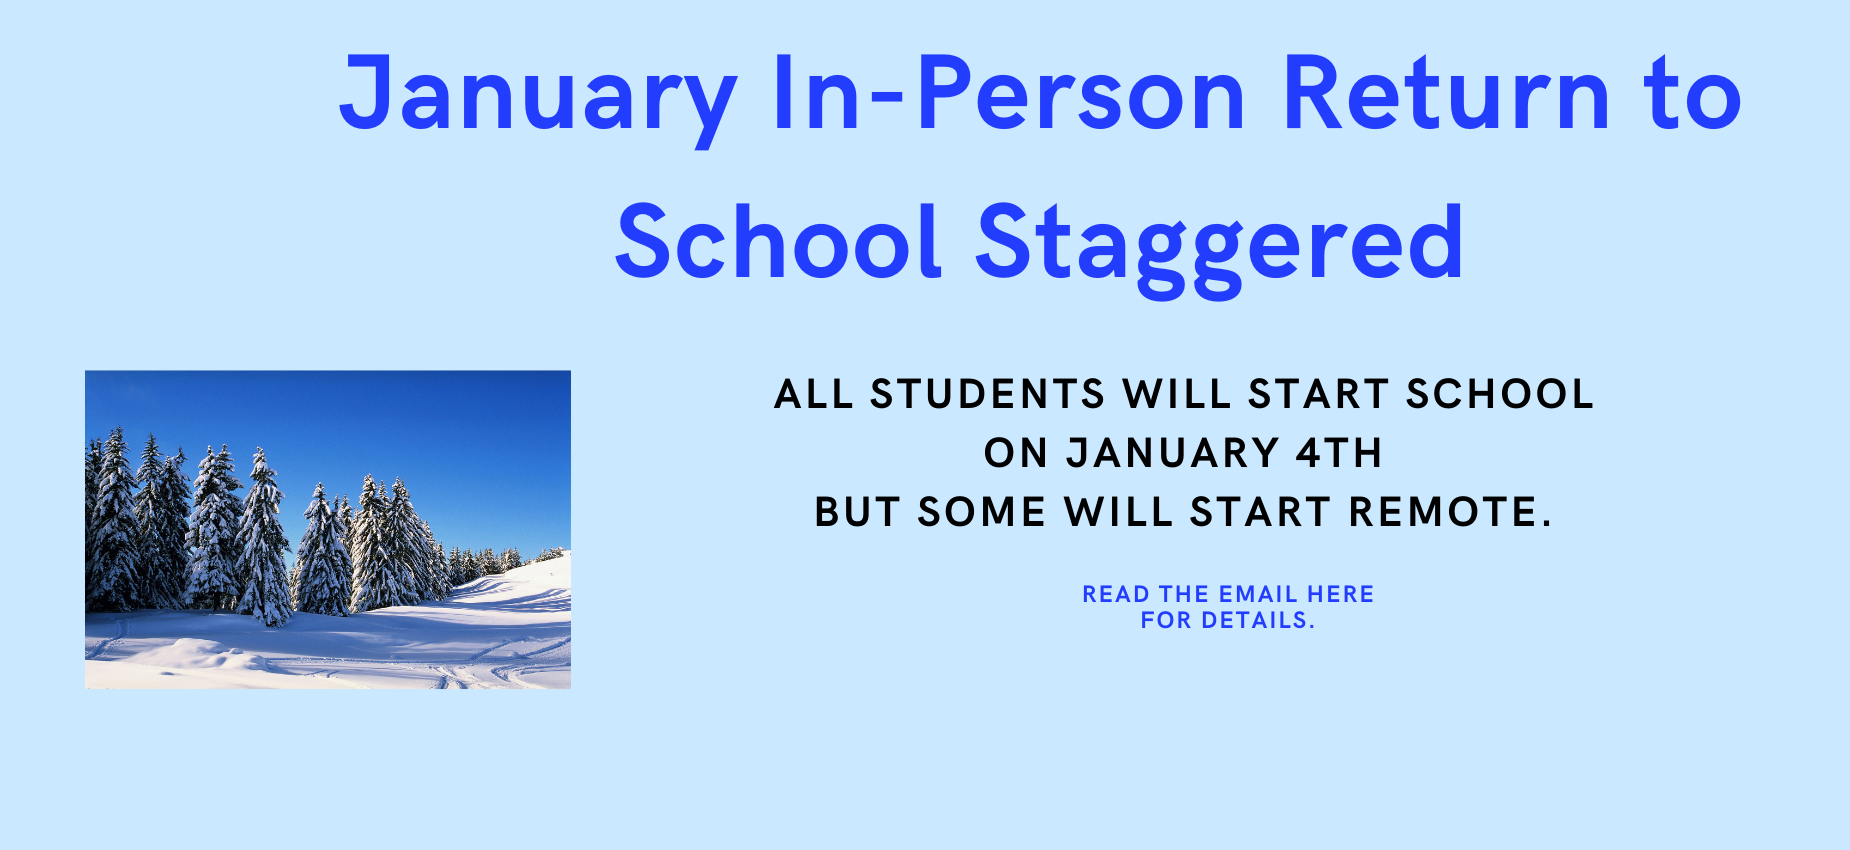 Staggered start to In-person Learning in January